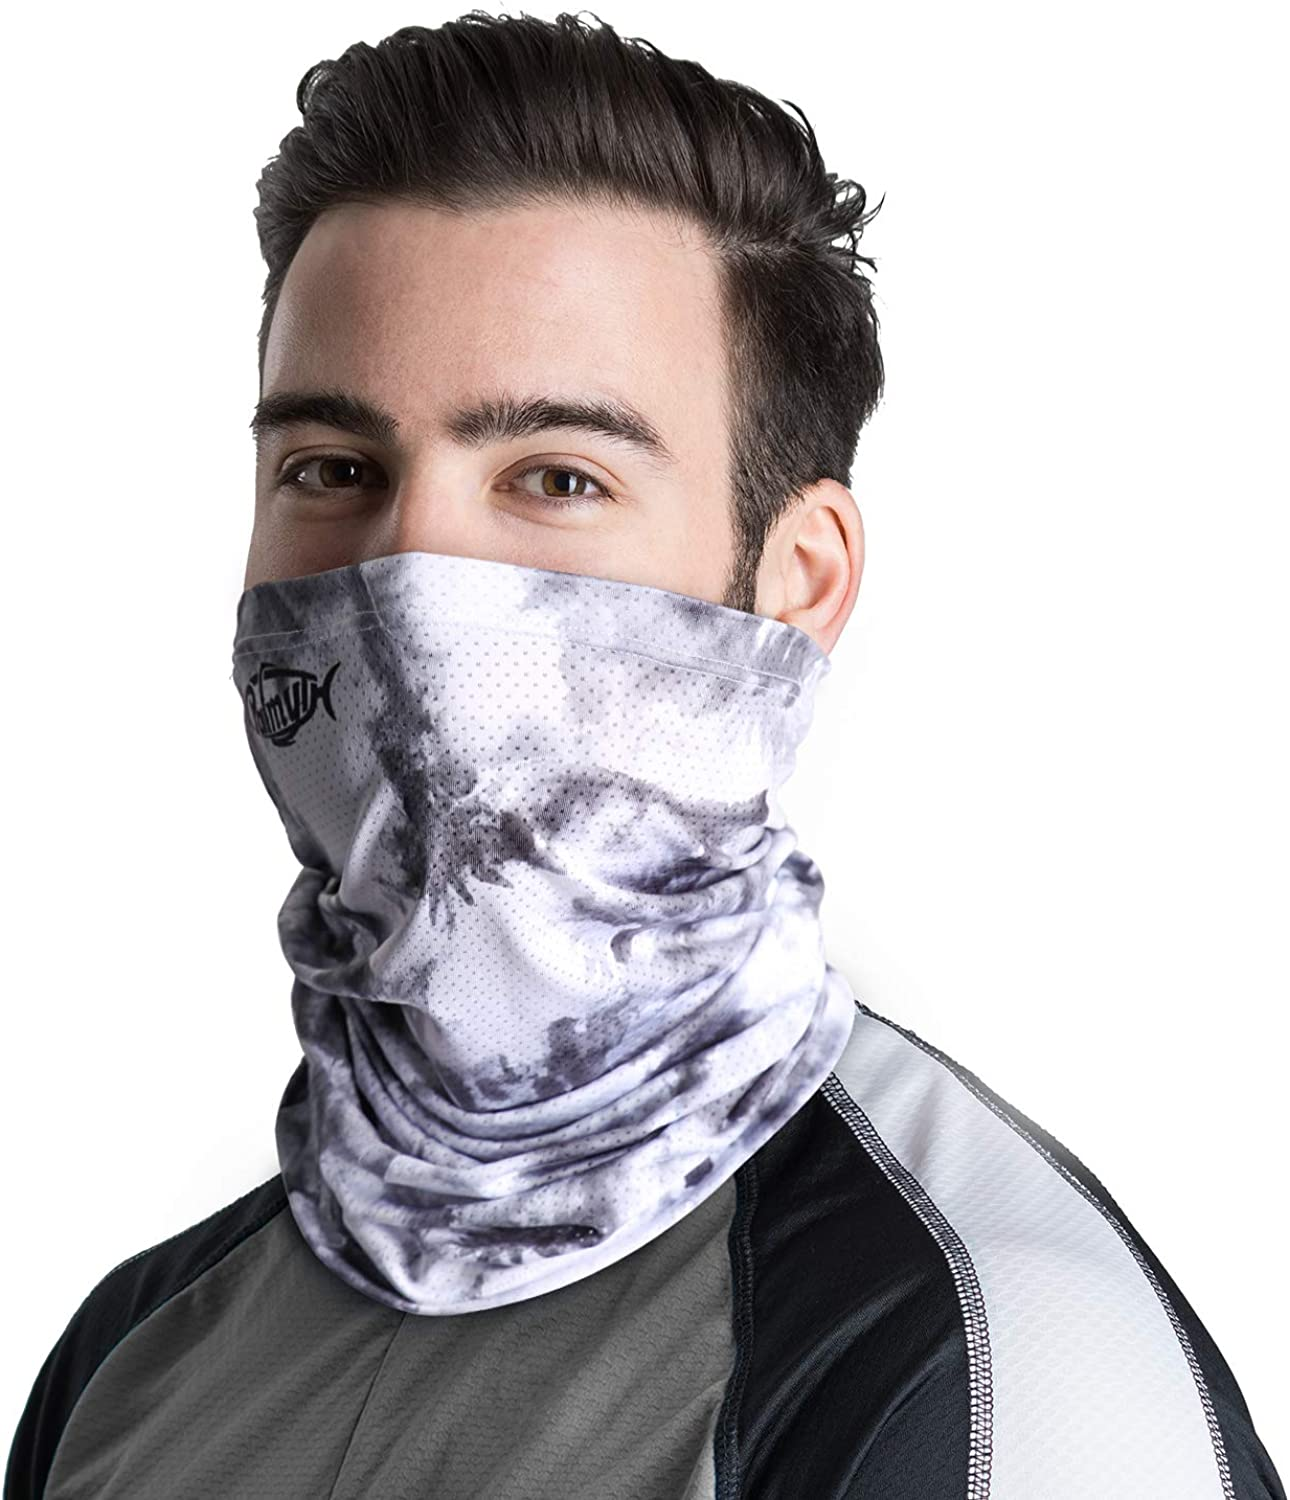 Palmyth Neck Gaiter Fishing Mask Bandana Sun Wind Dust Protection UV UPF 50+ Camo Headwear Balaclava Magic Scarf for Men Women Hunting, Cycling, Motorcycling, Running